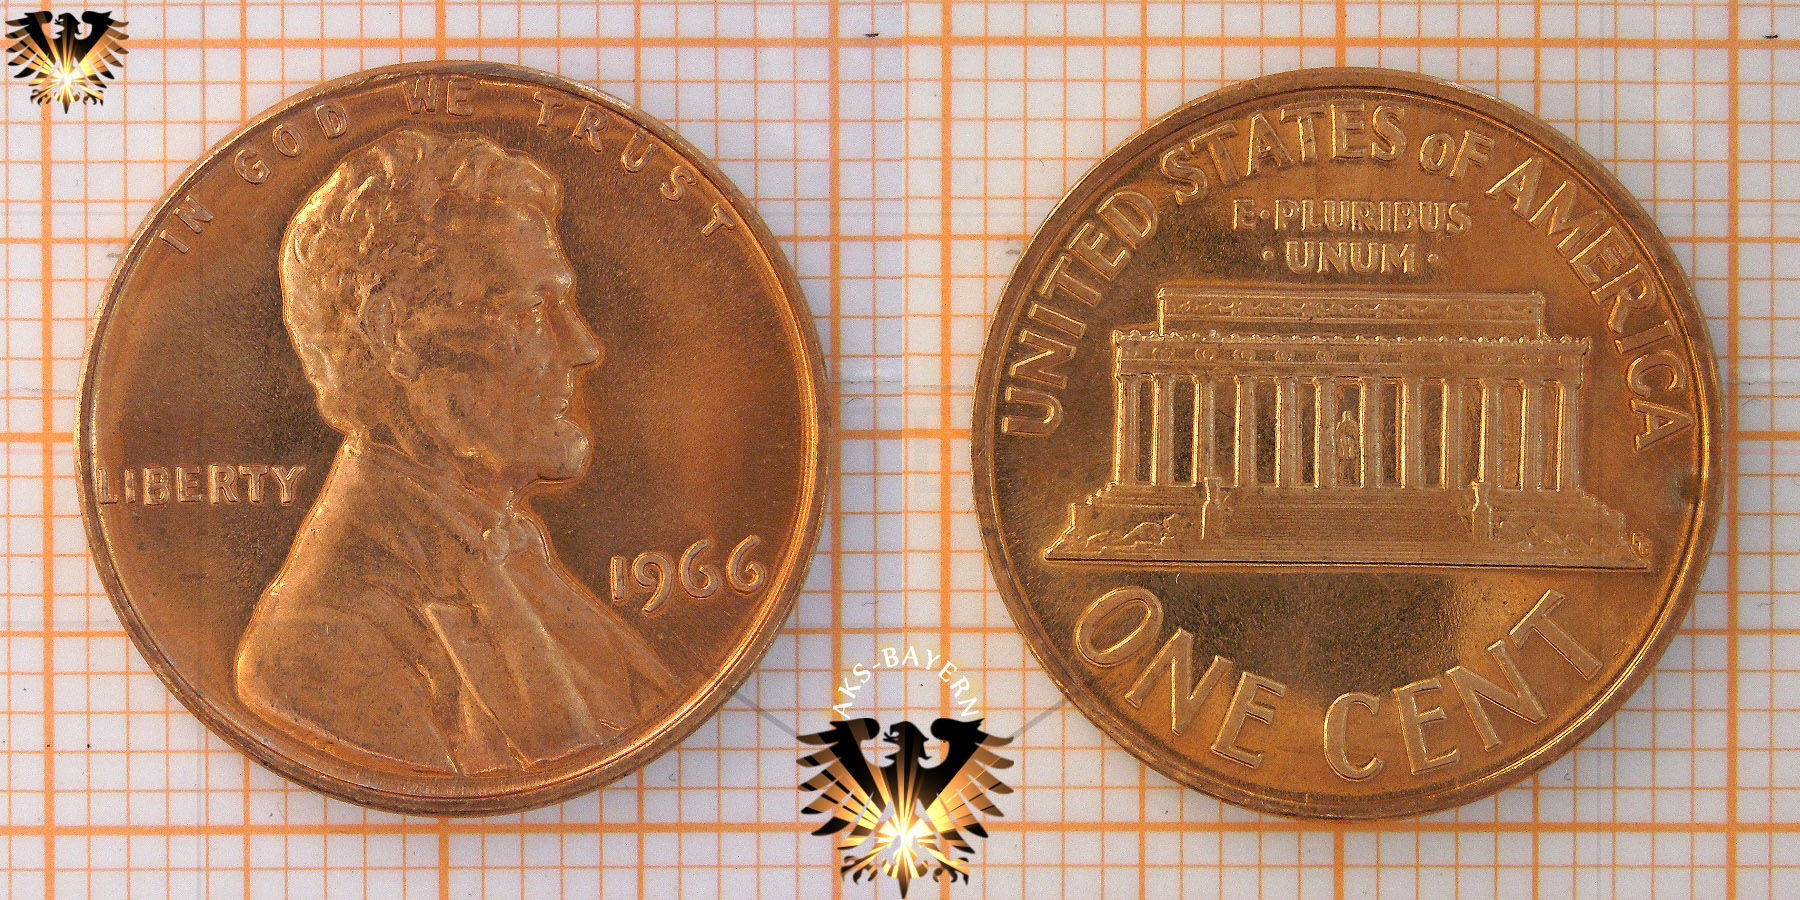 1 Cent Usa 1966 Lincoln Memorial Cent 1966